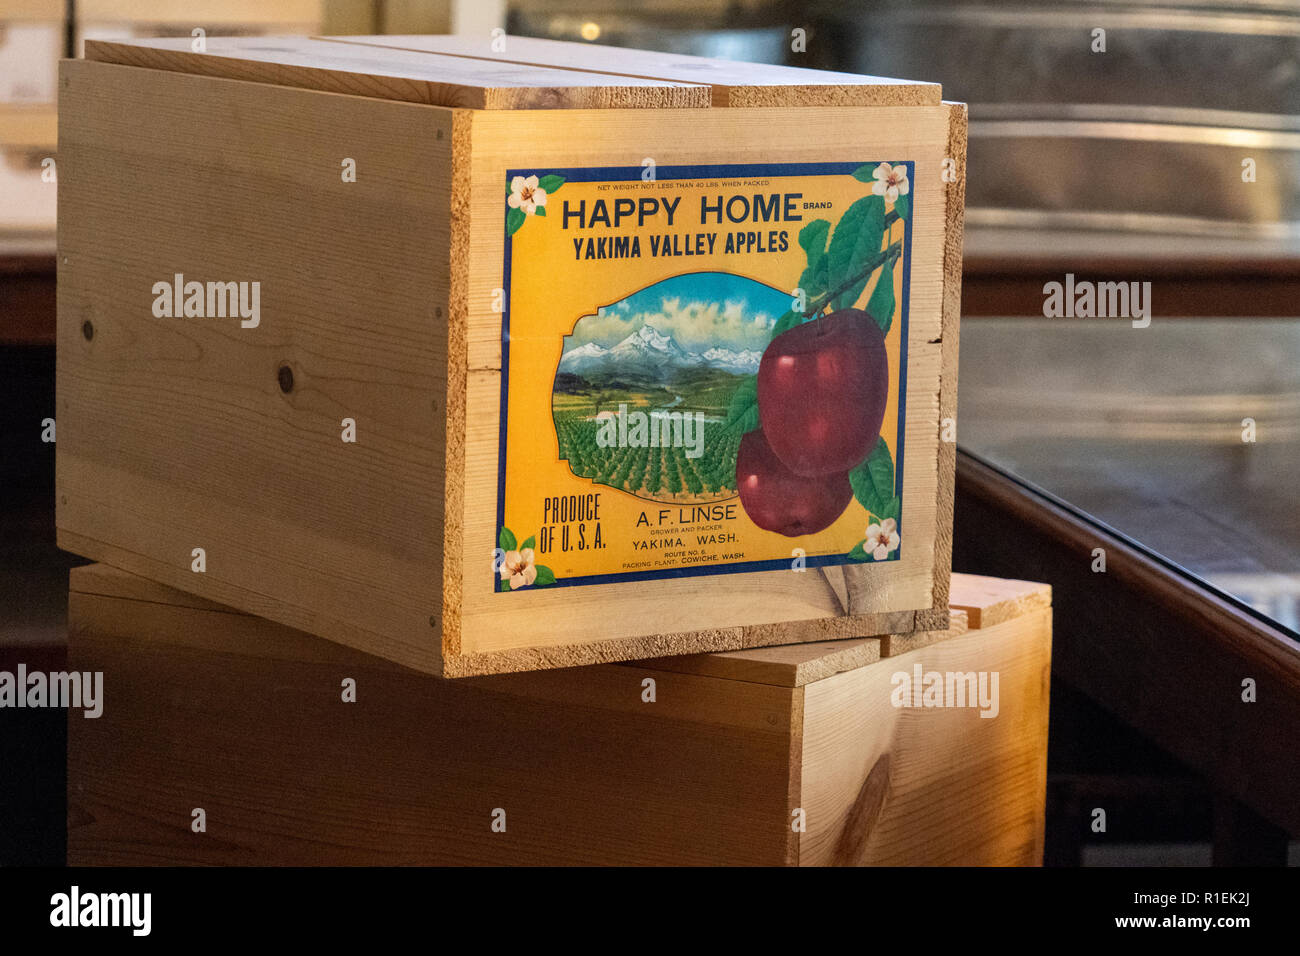 August 8 2018 - McCarthy, Alaska: Old abandoned fruit crates of apples from Washington state sit in the Kennecott Mine abandoned store - Stock Image